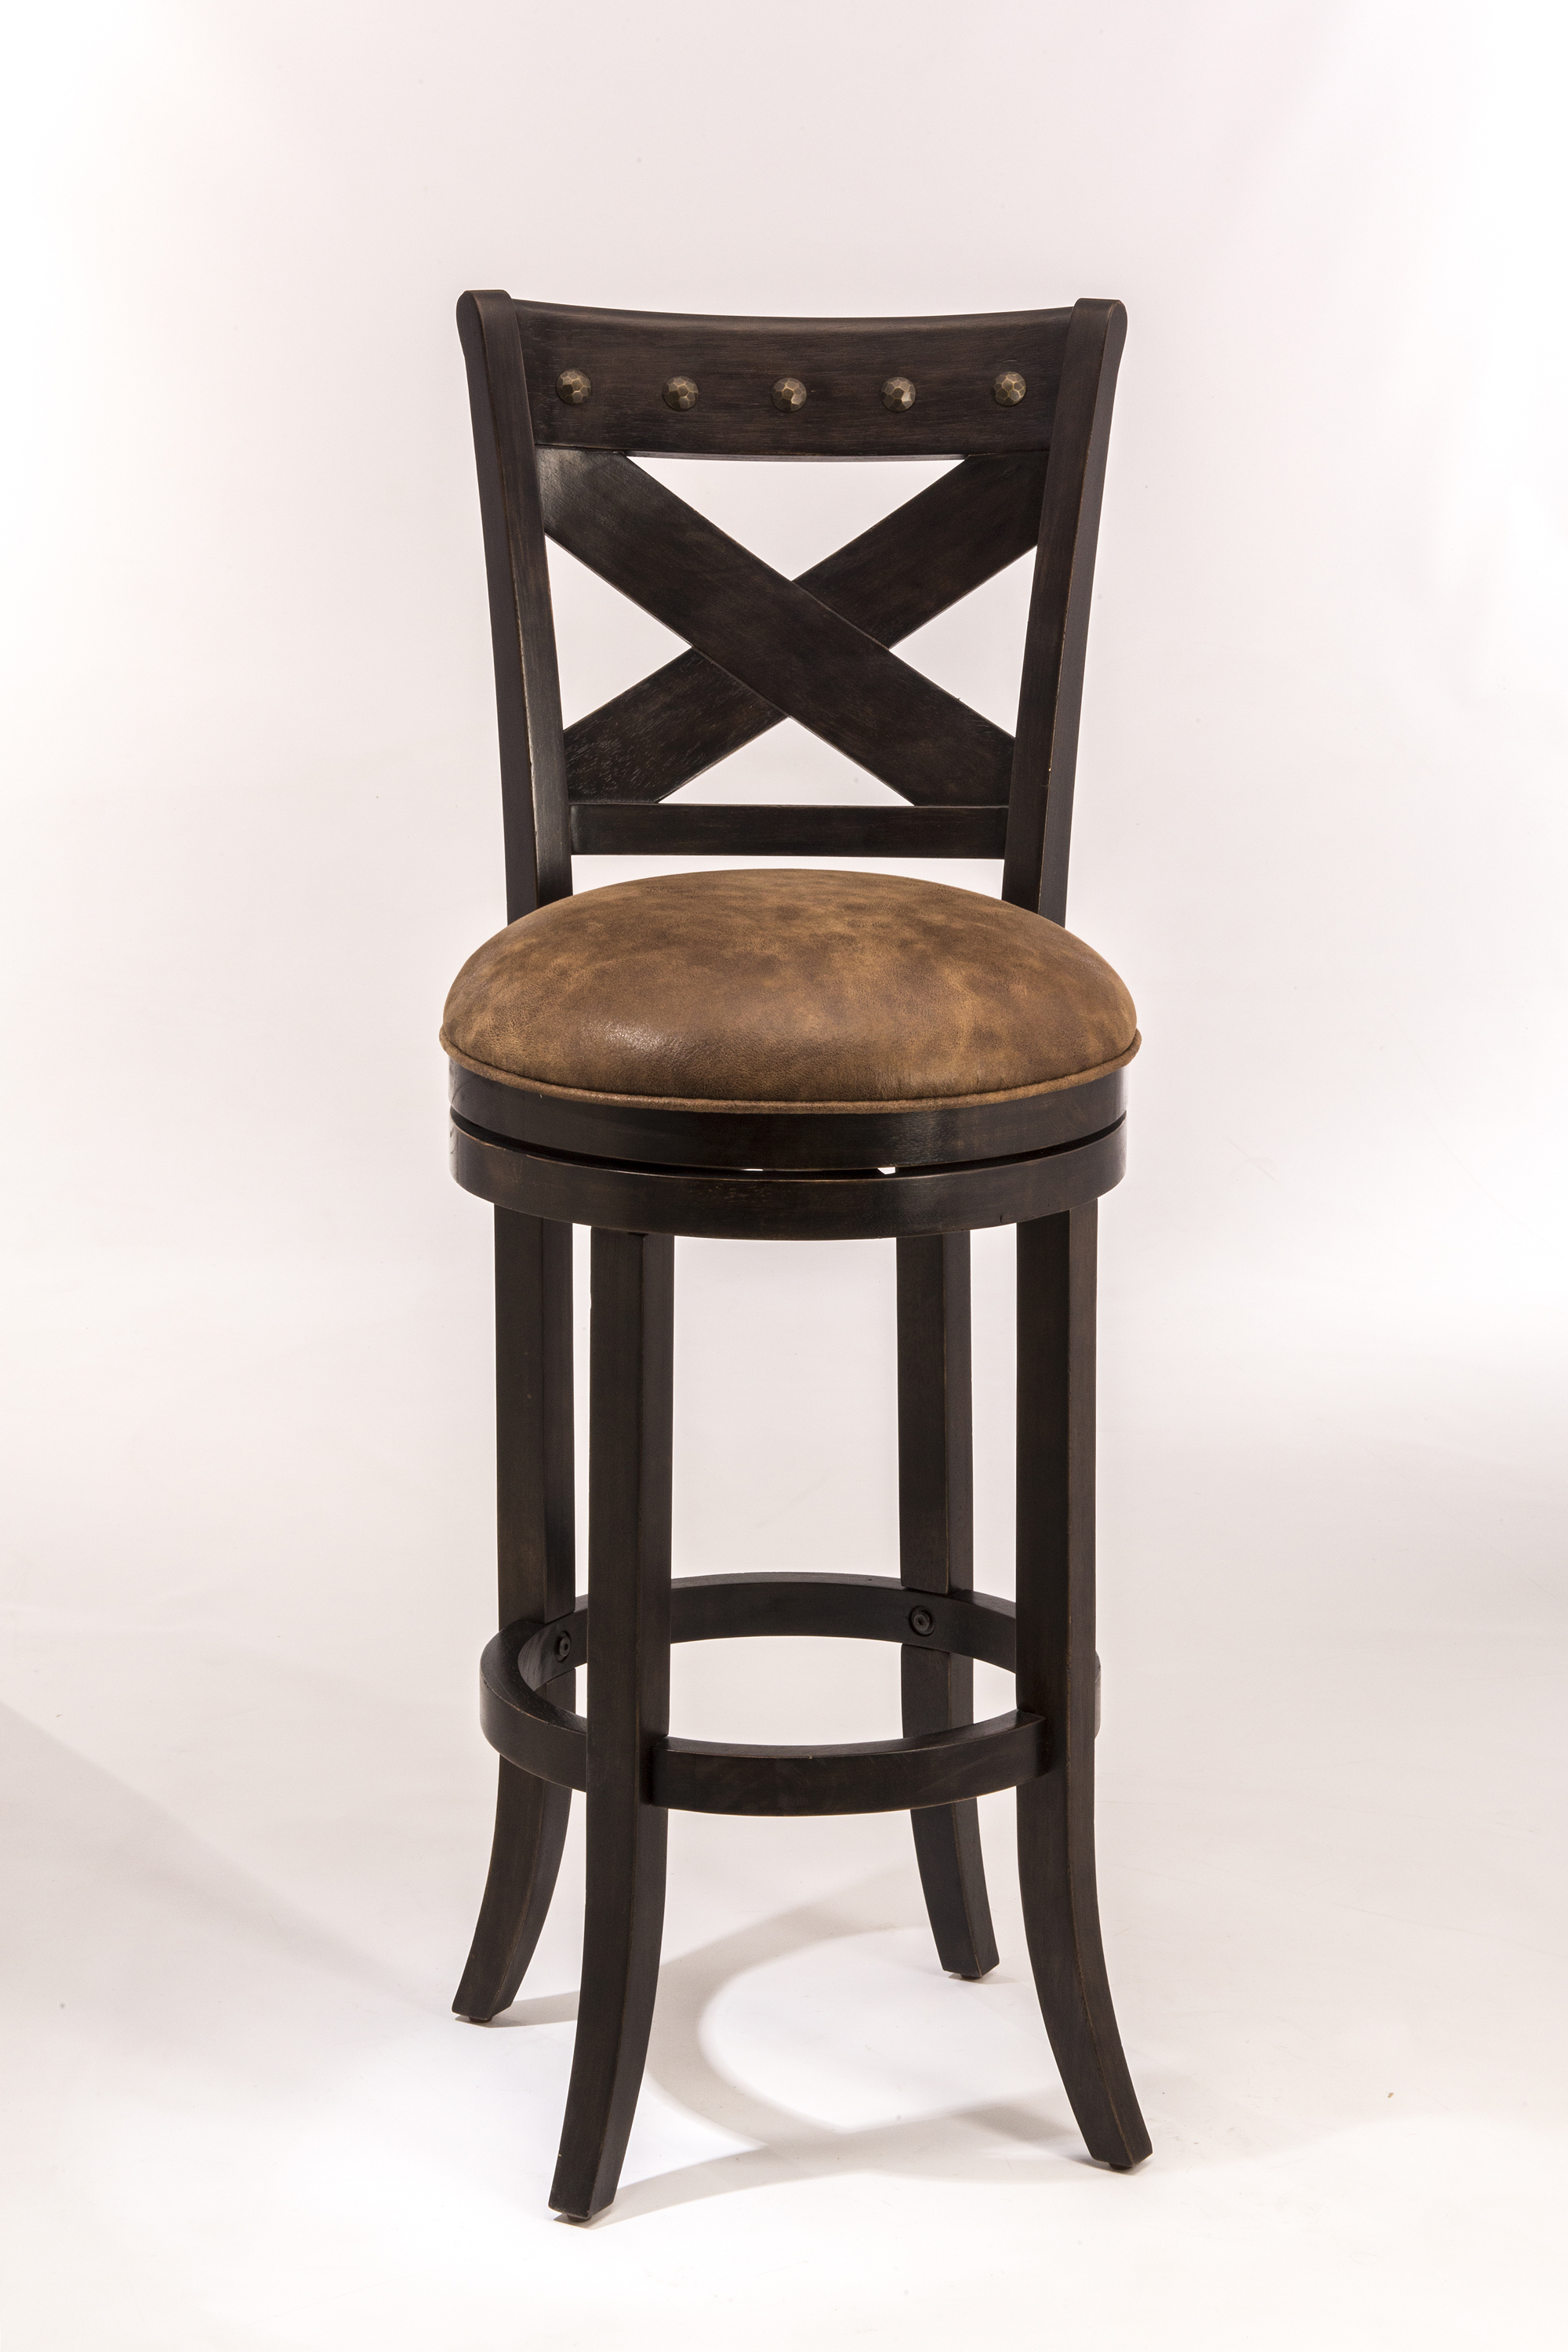 Wood Counter Stools ~ Hillsdale wood stools a swivel counter height